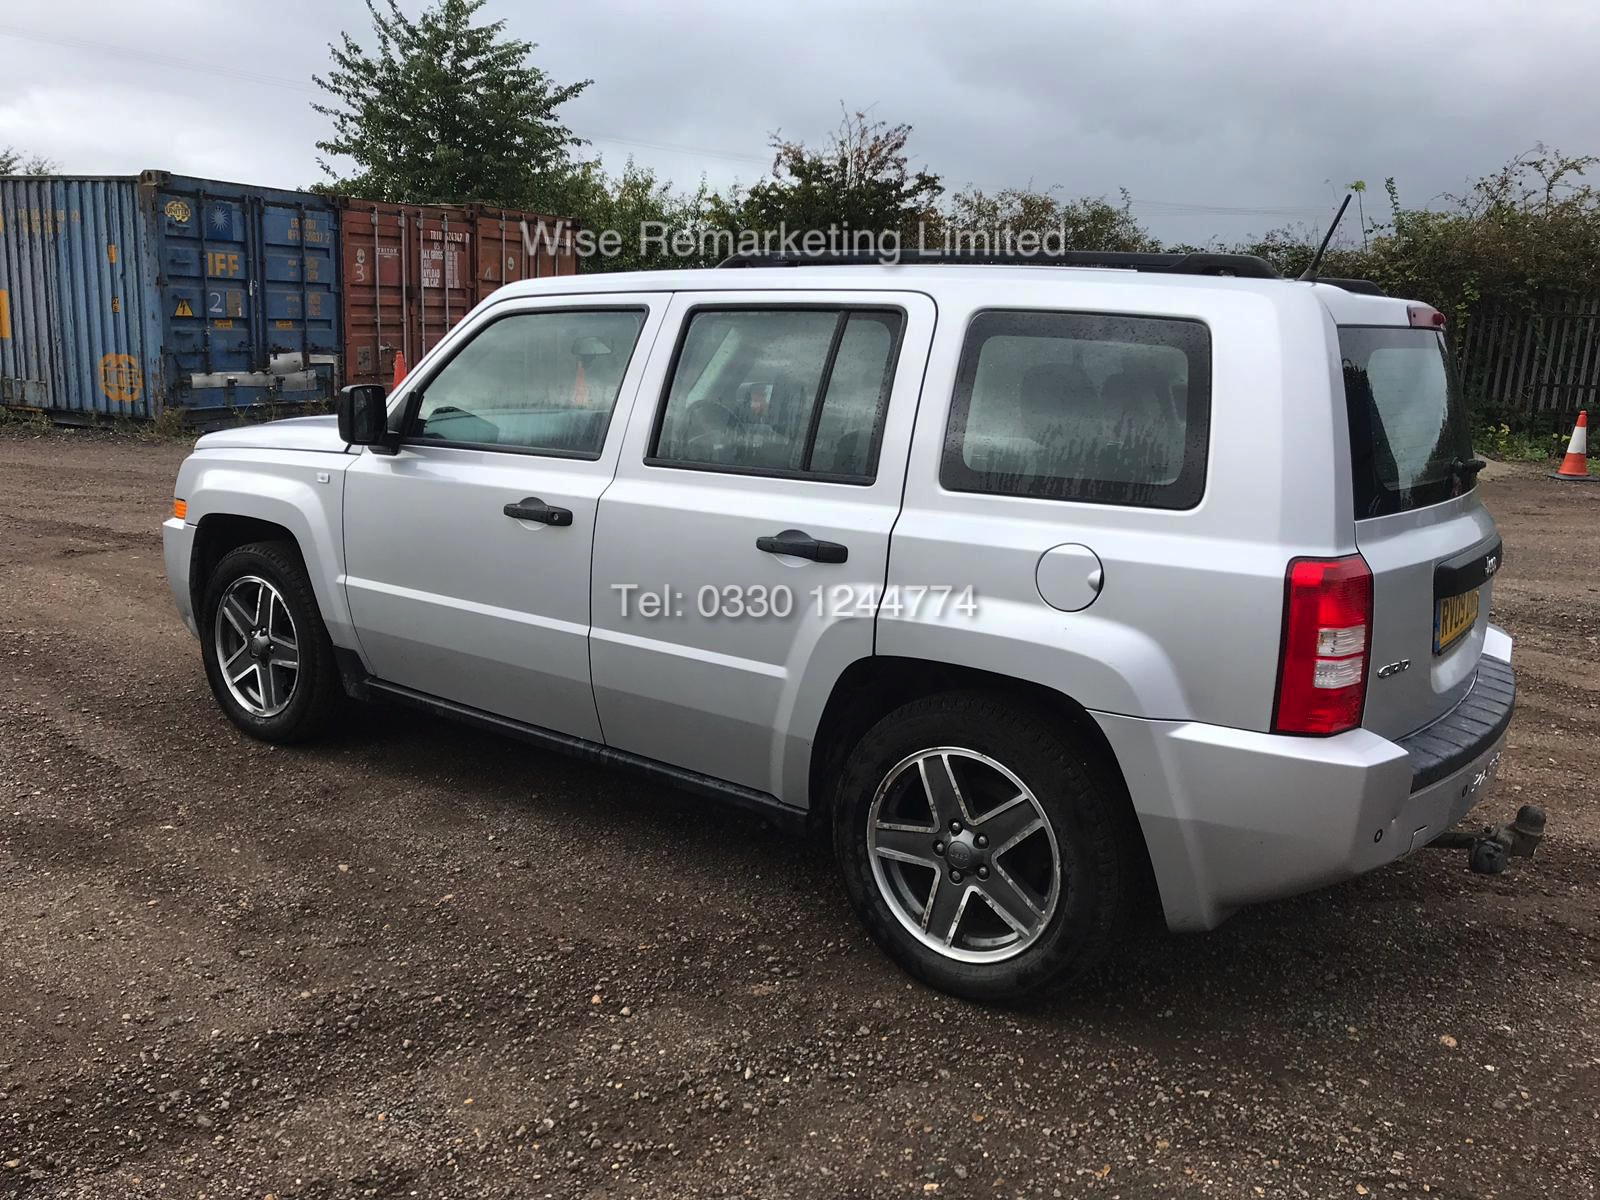 Lot 22 - JEEP PATRIOT SPORT 2.0 CRD 2009 - 09 REG - METALLIC SILVER